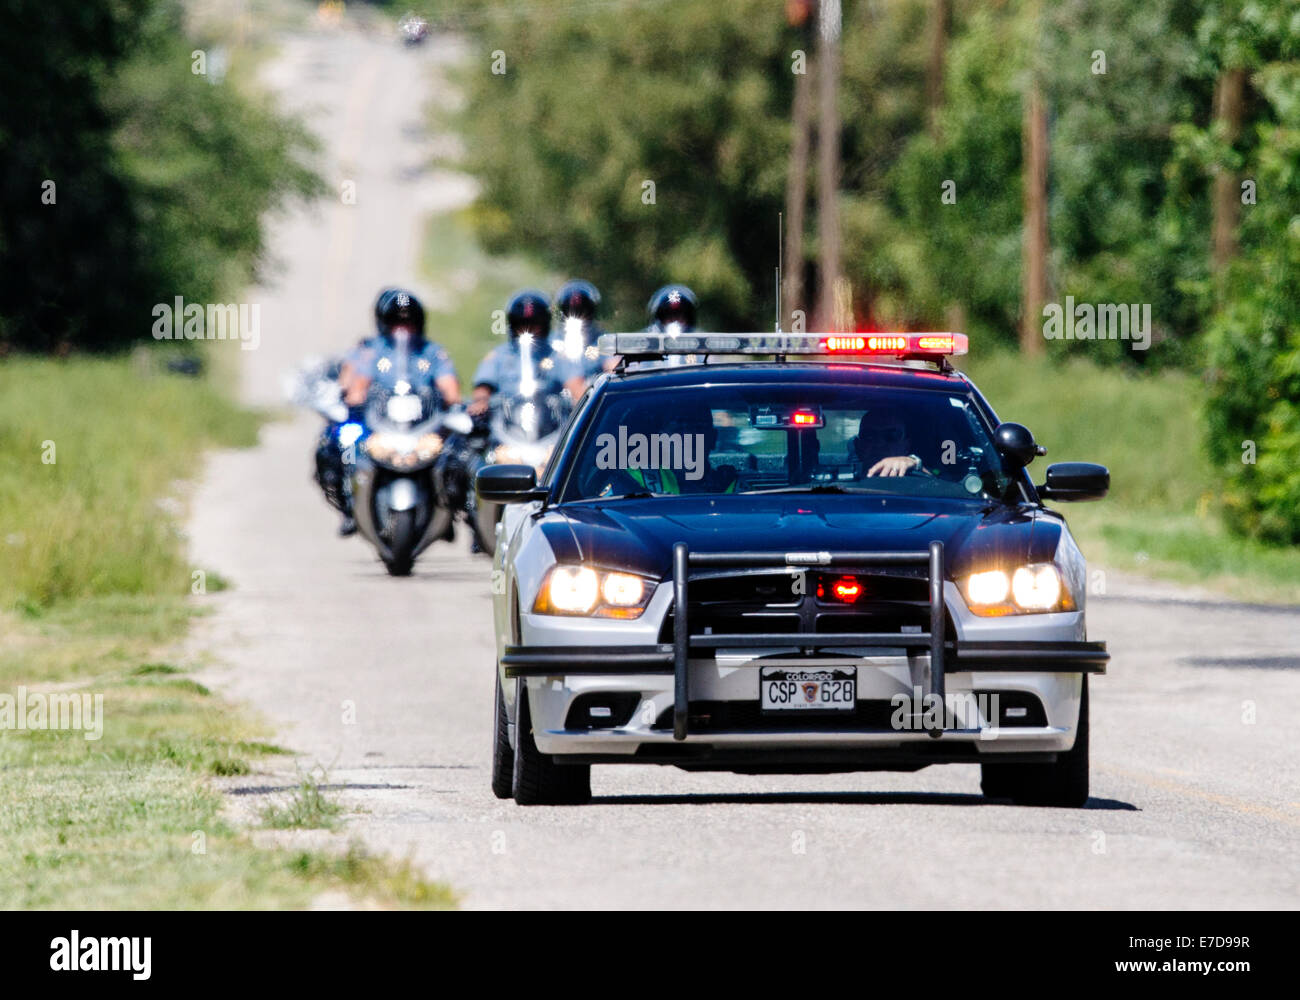 Bike cops stock photos bike cops stock images alamy for Colorado motorized bicycle laws